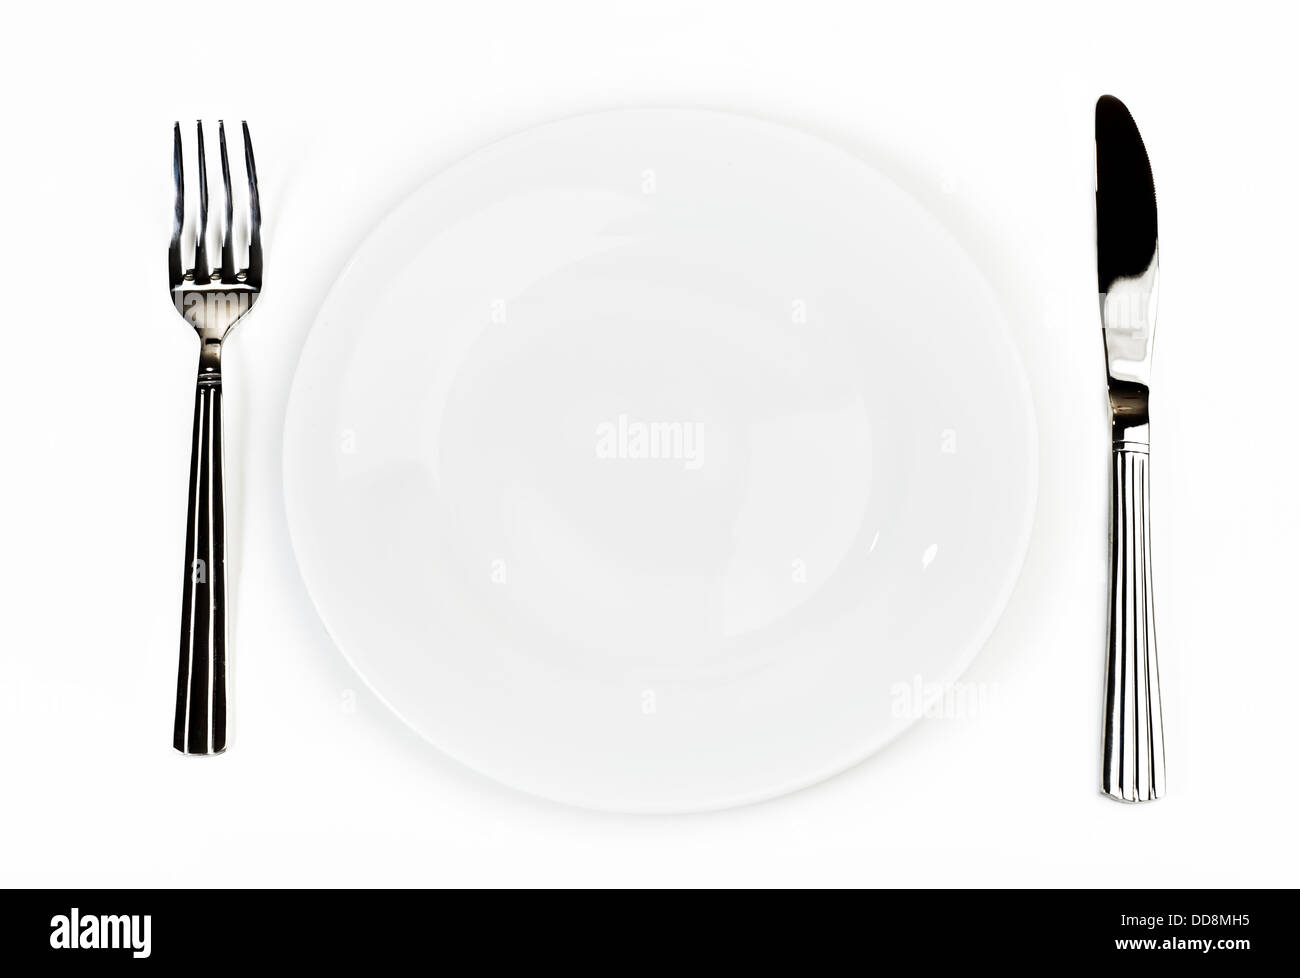 Plate with silverware: knife and fork, over white - Stock Image